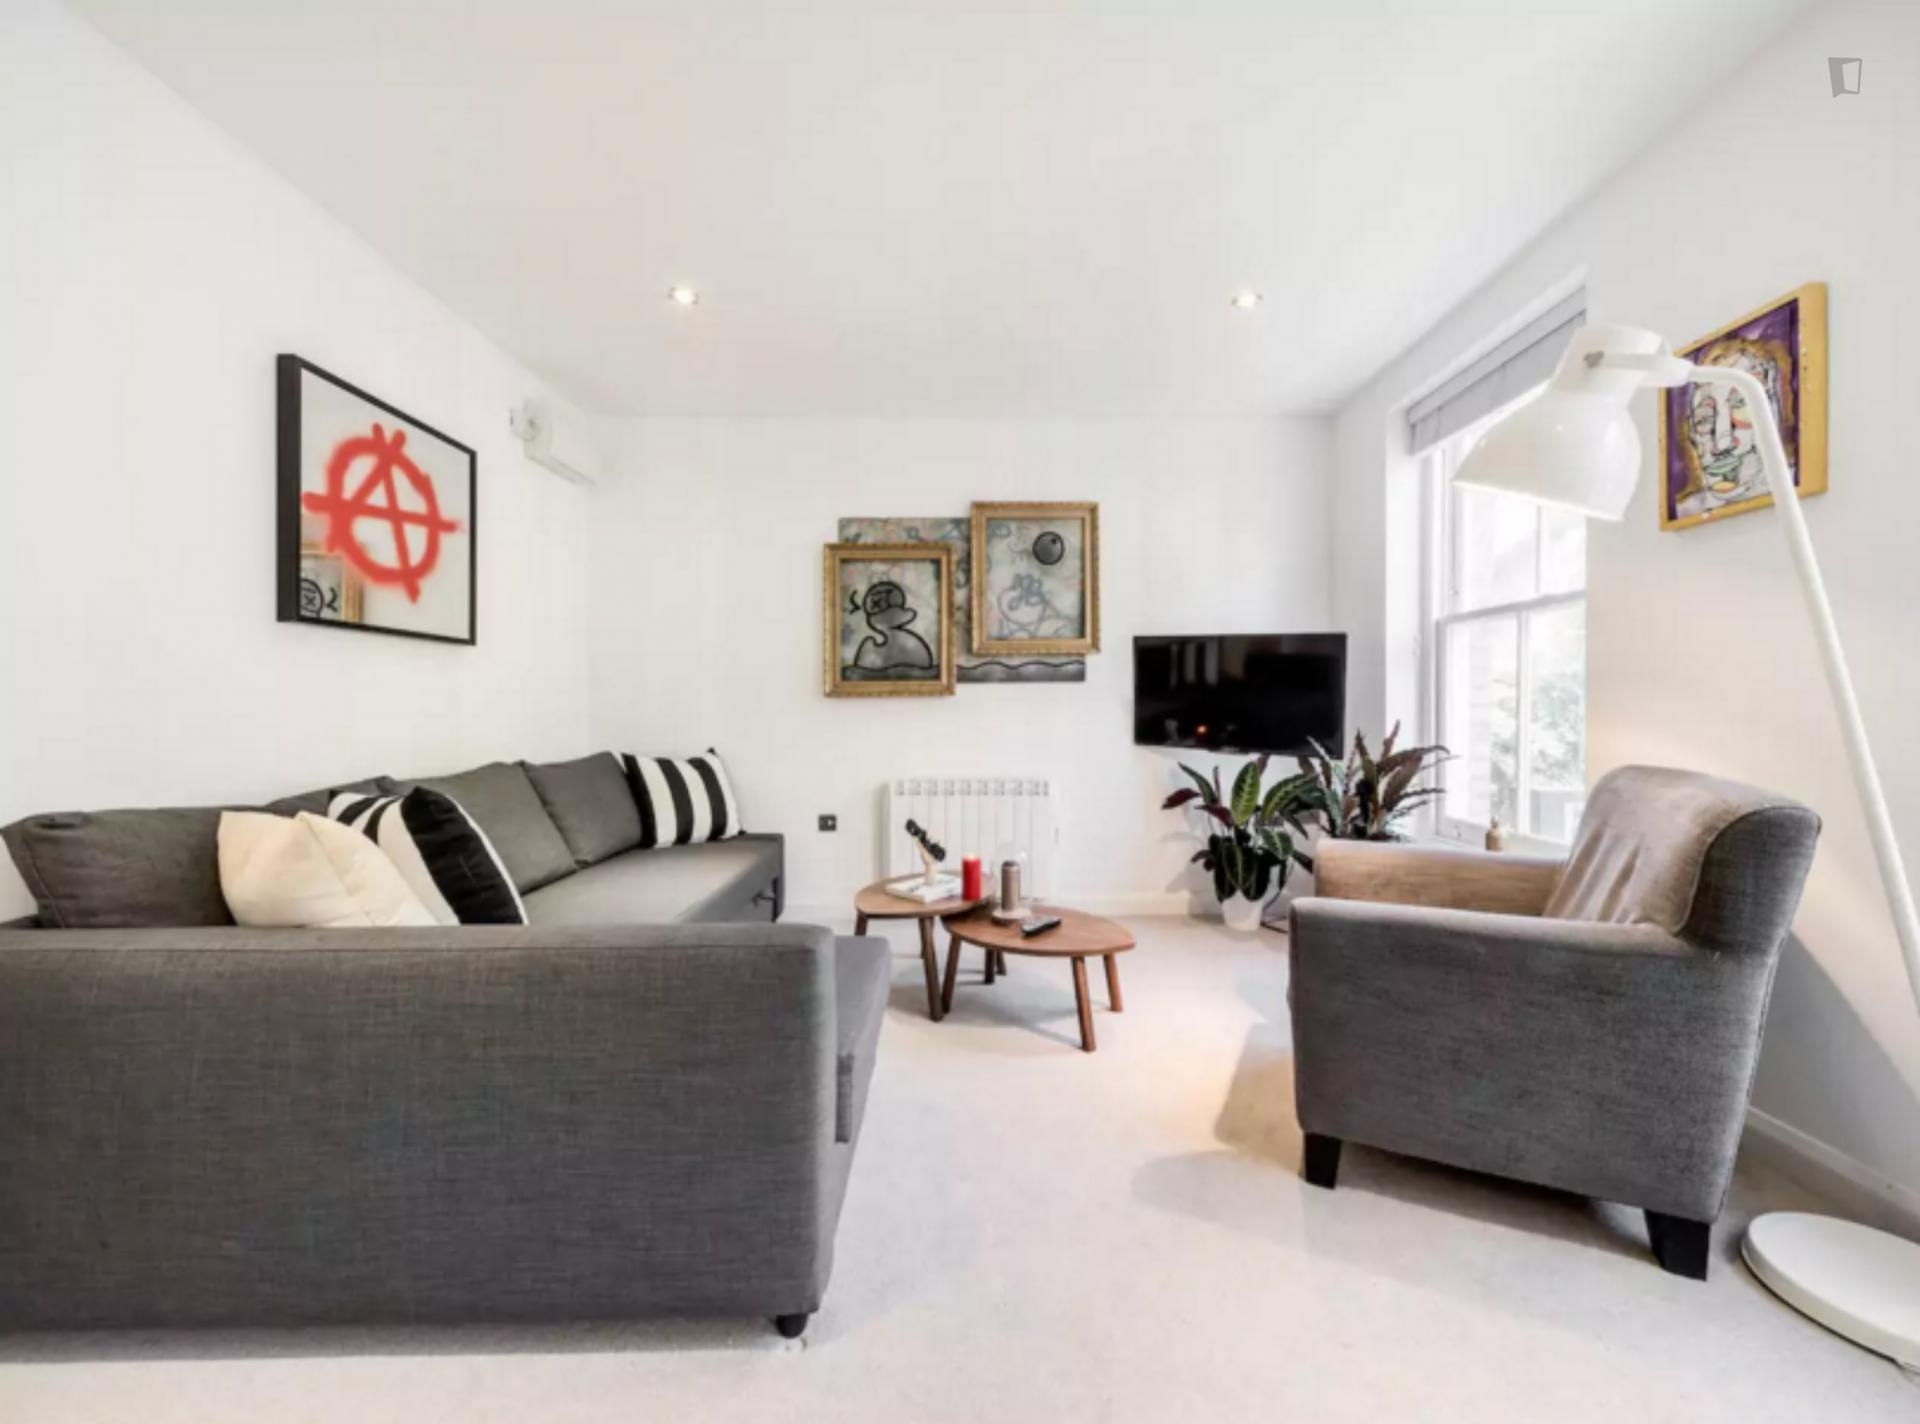 Shoreditch - 2 bedroom apartment in London